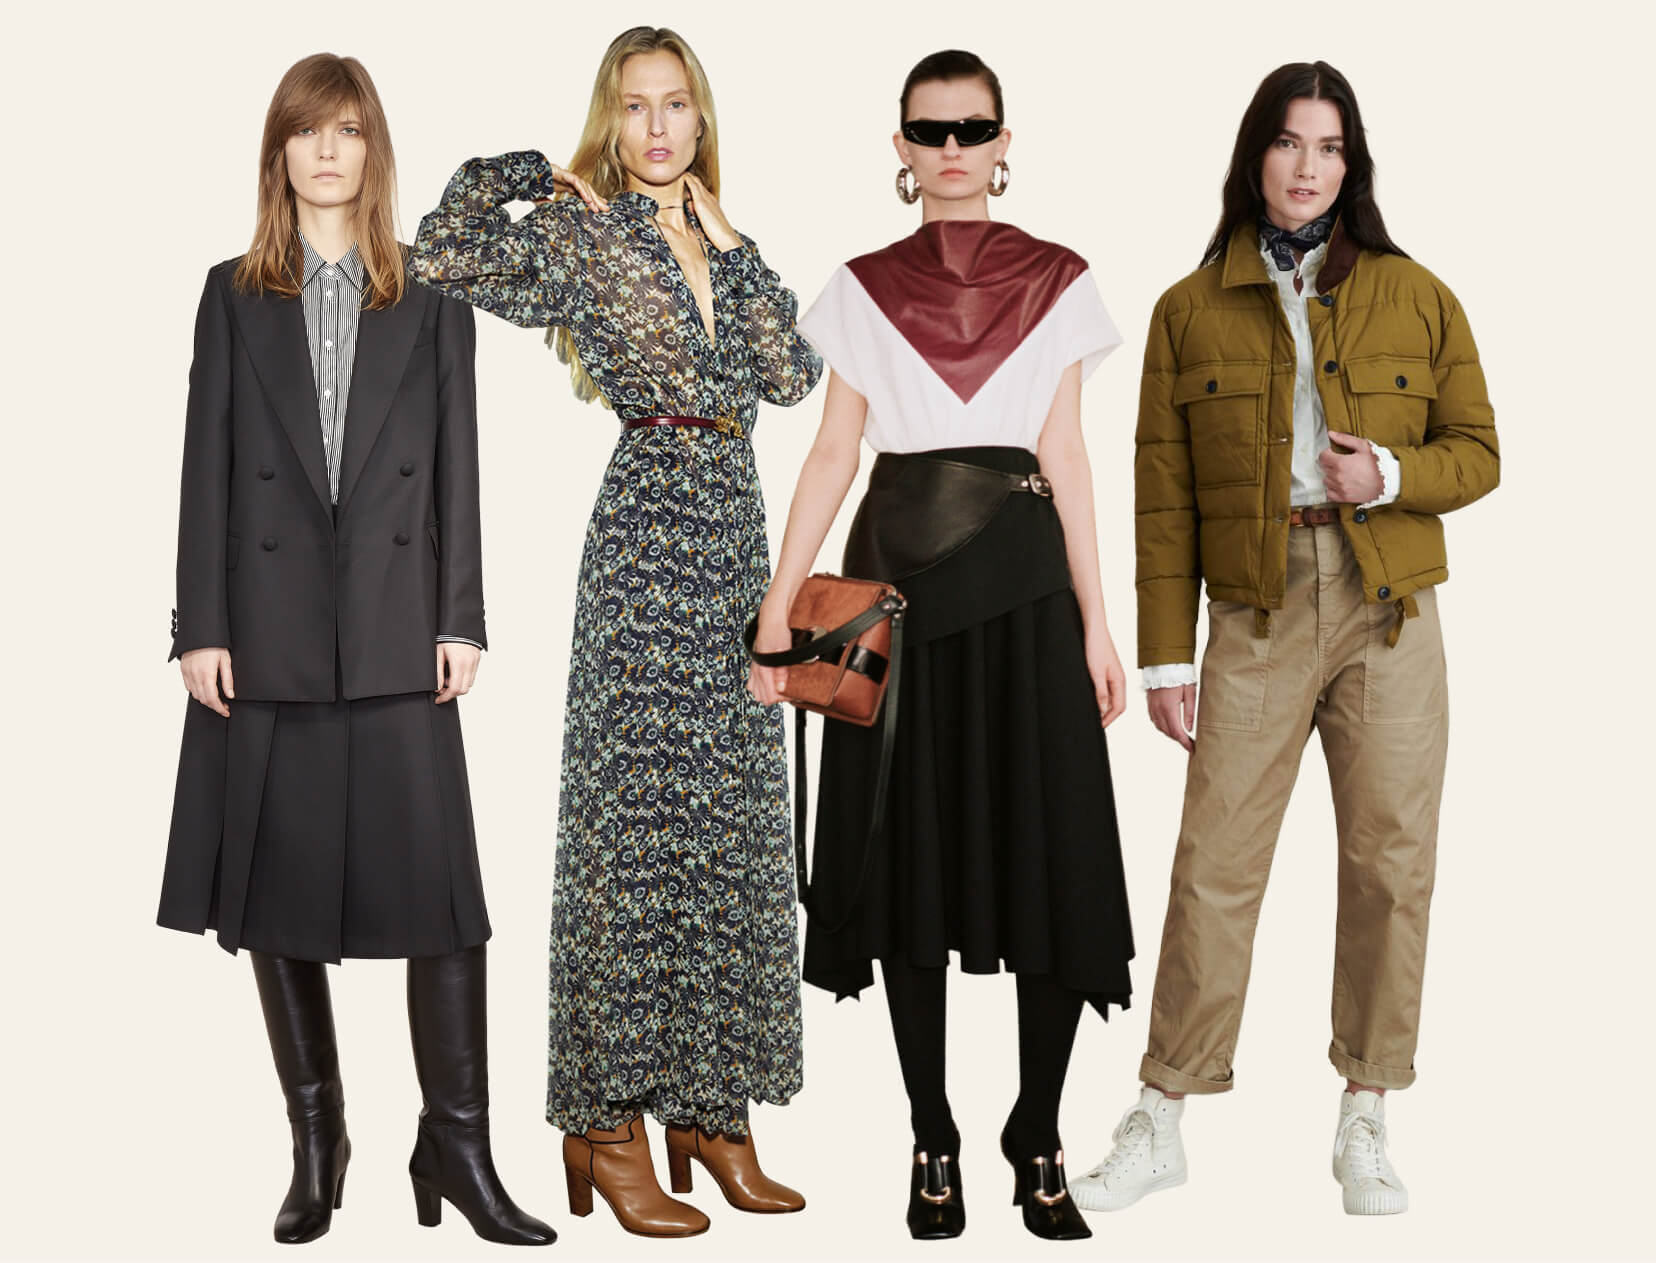 women in fall outfits